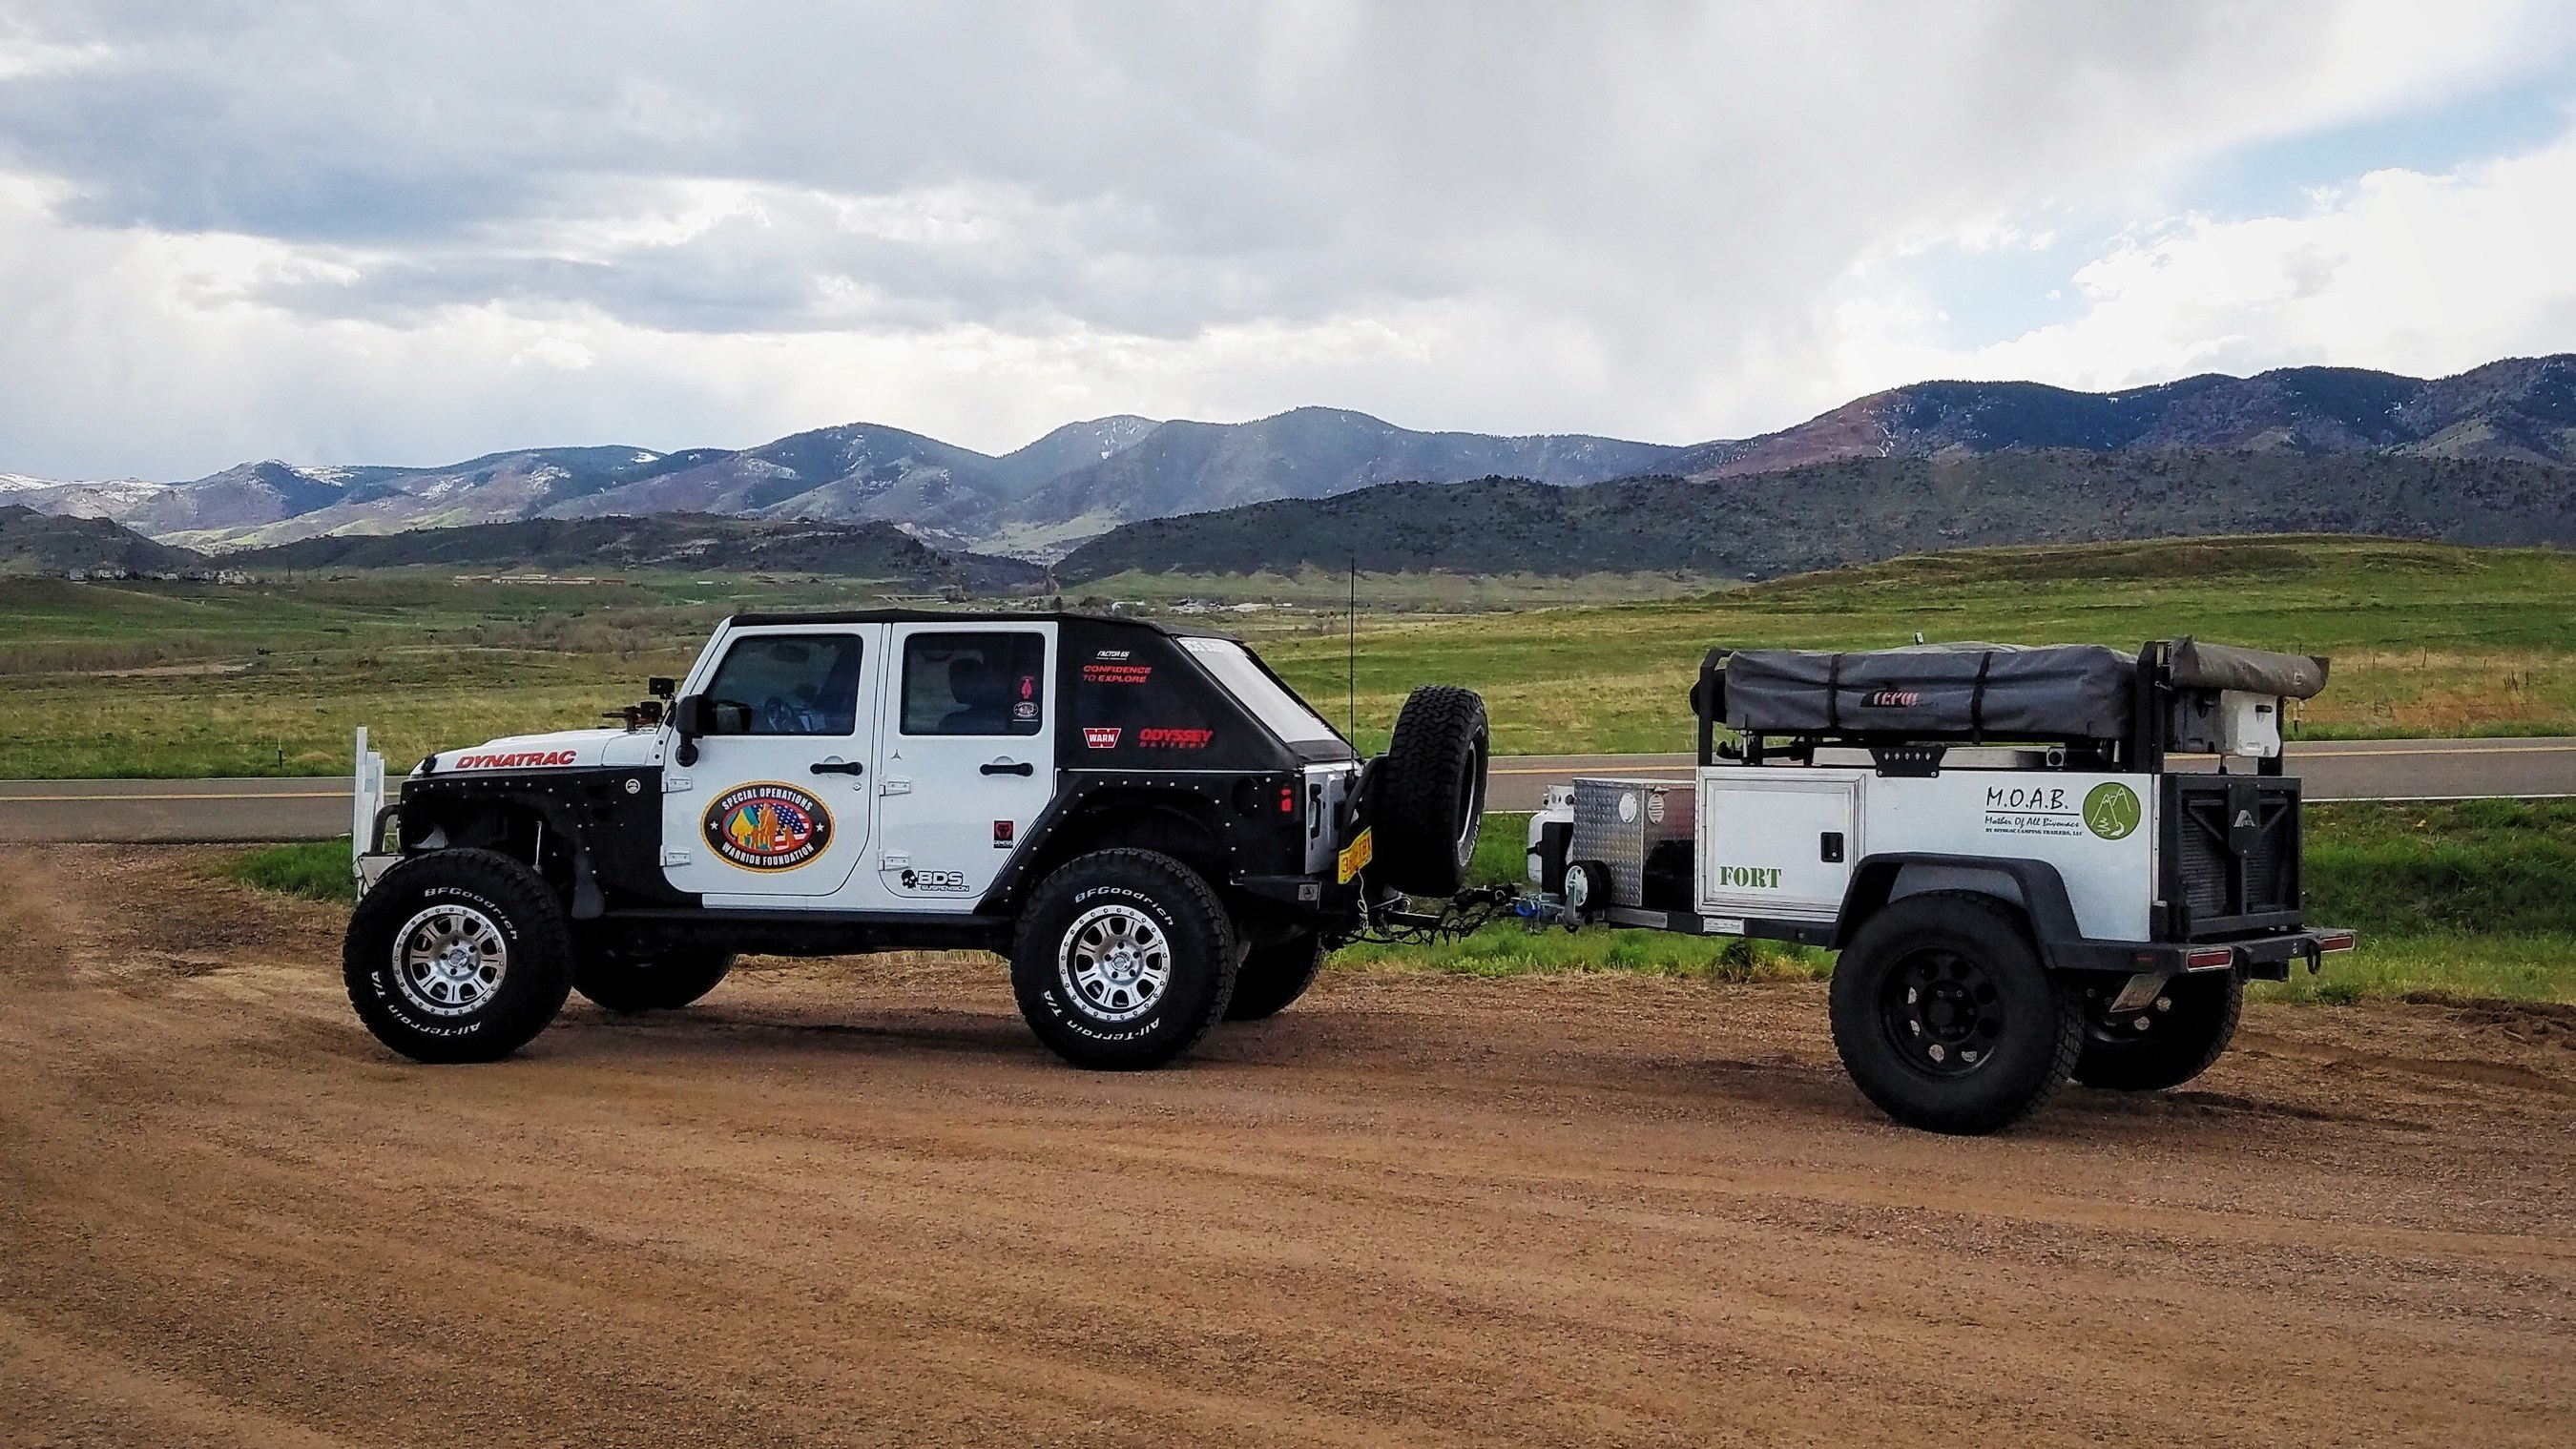 The Warrior Jeep Team was formed in 2015 around support for Special Operations U.S. troops who were wounded or died in combat, with the purpose of raising awareness and generating support for these veterans and their families who often do not receive government benefits.